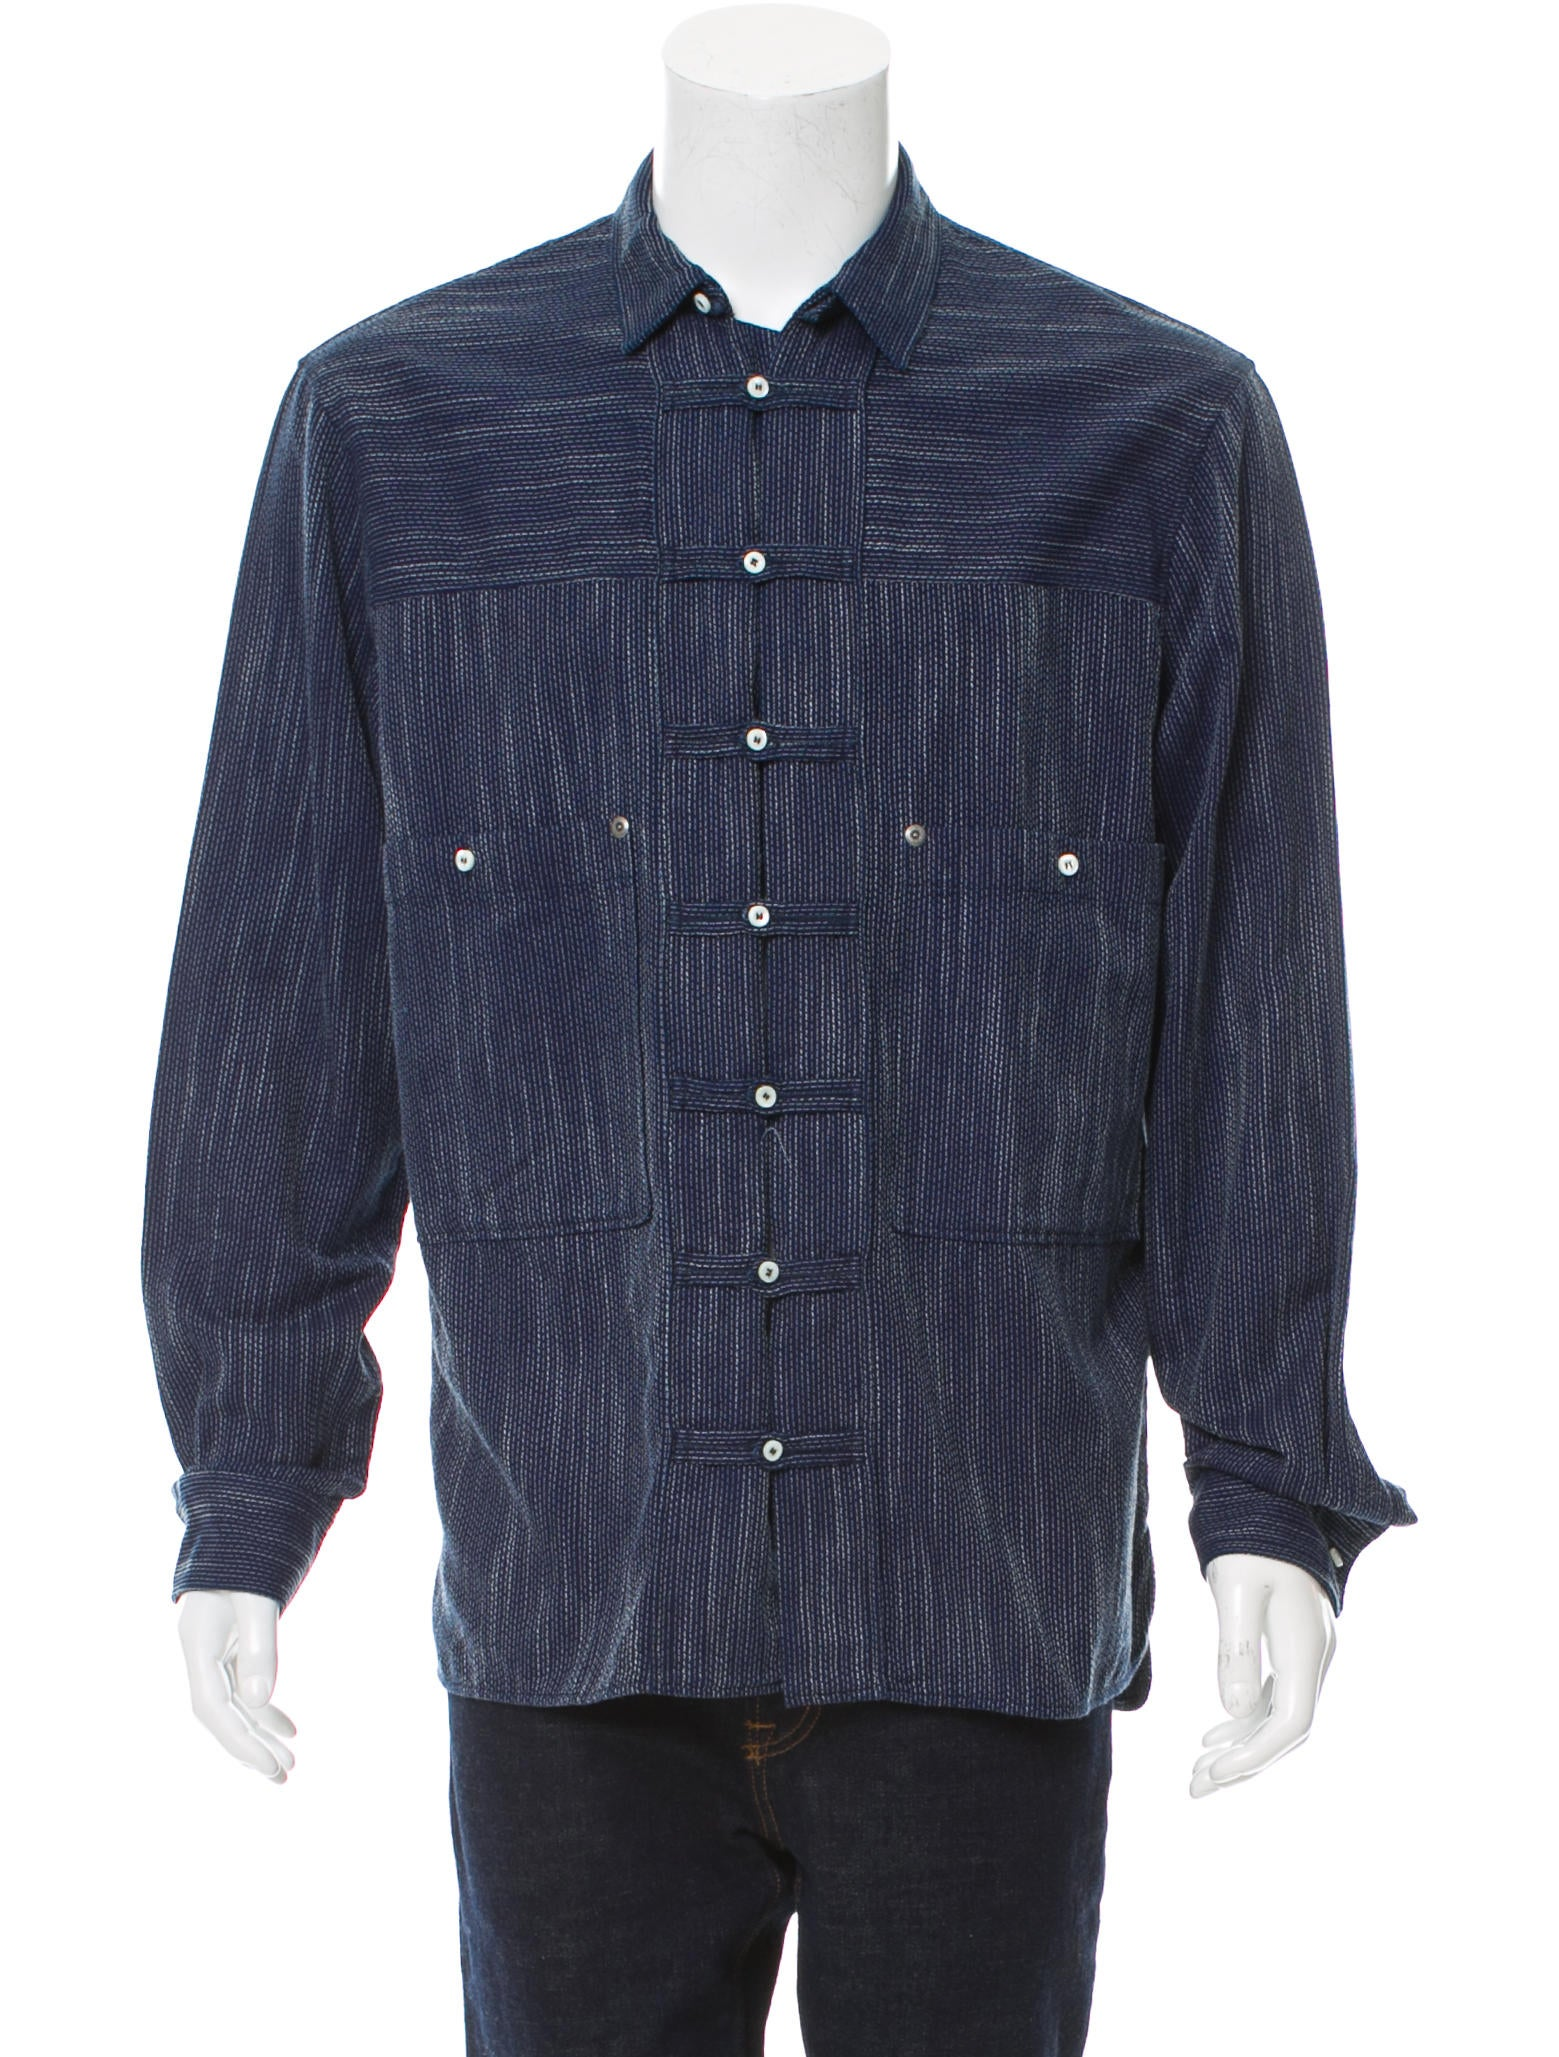 Dsquared striped button up shirt clothing dsq25905 for Striped button up shirt mens